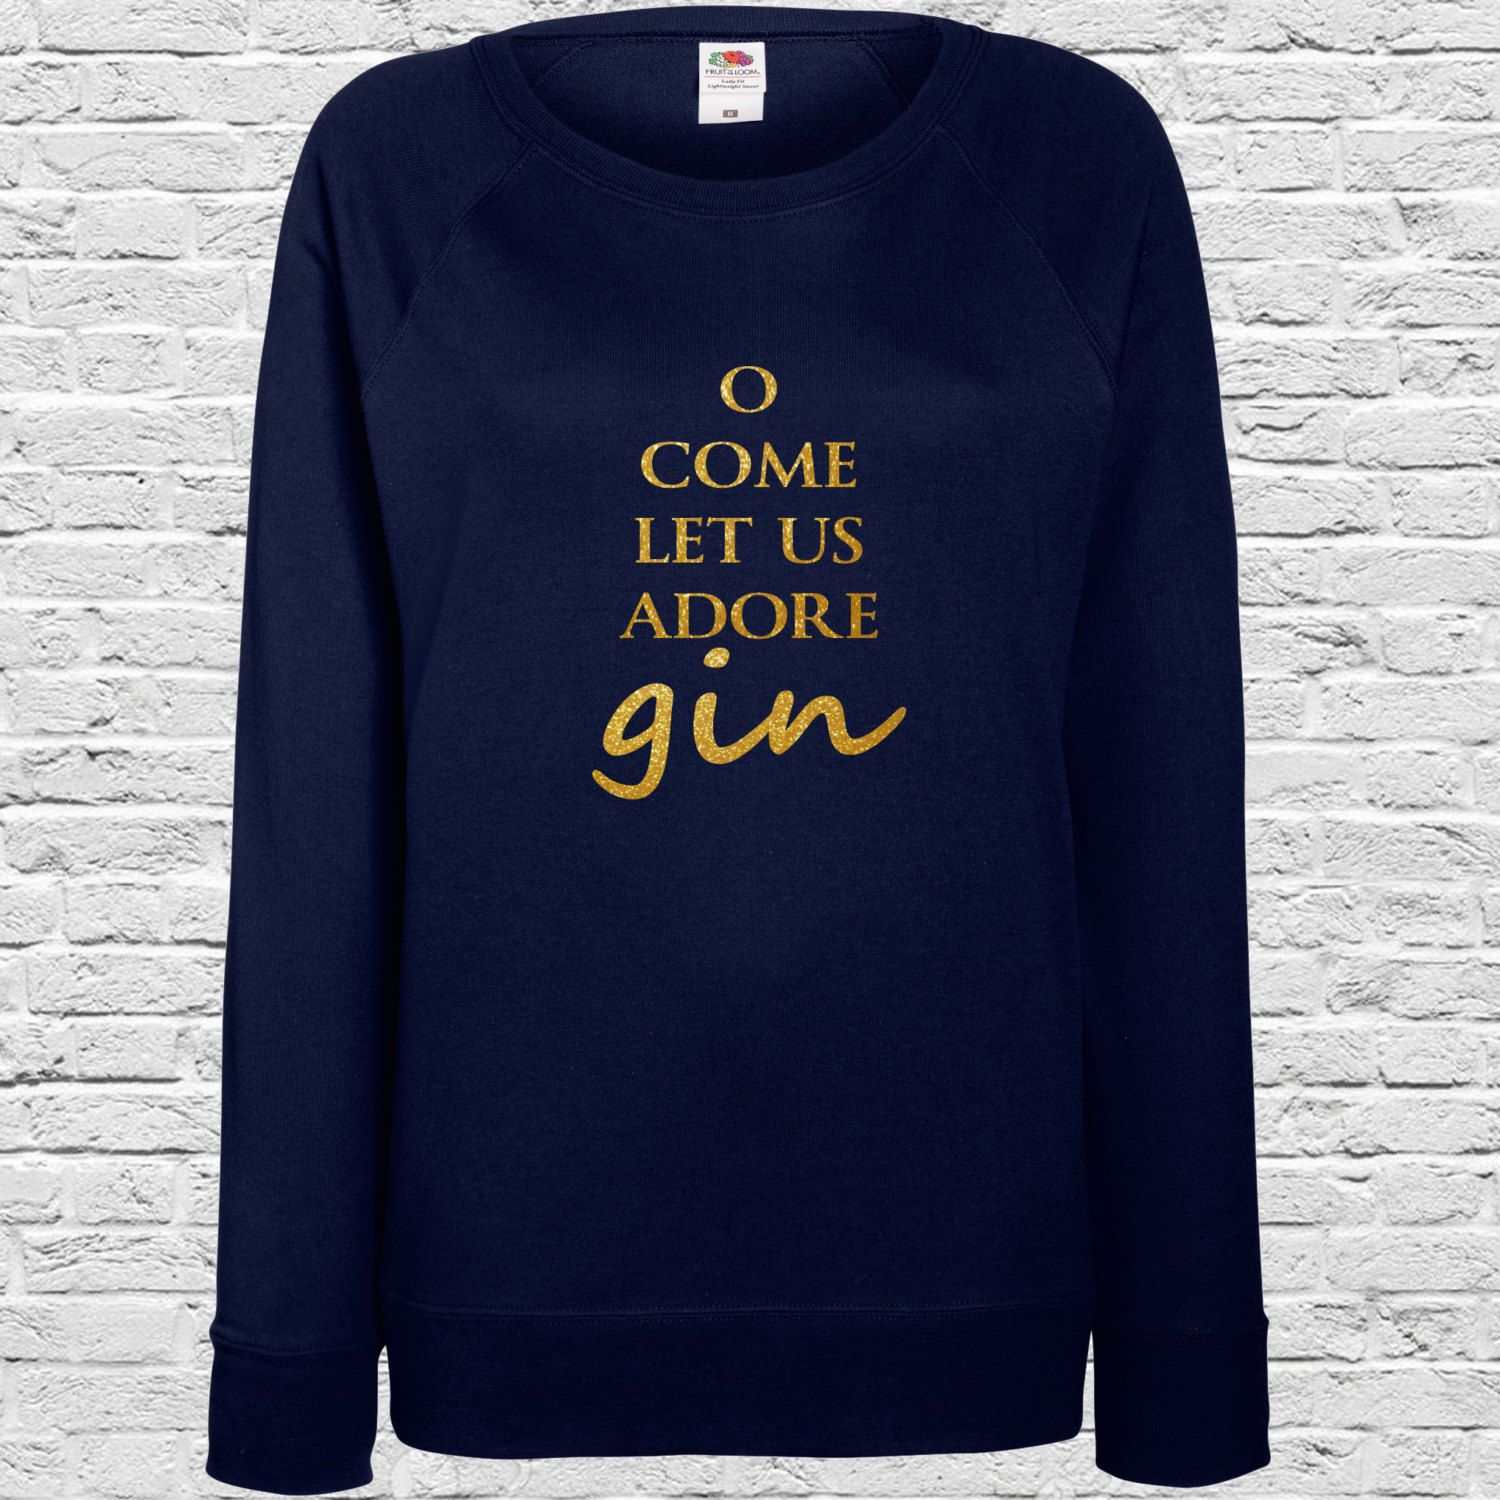 68976bab31e6f ON SALE Christmas Ladies Jumpers O Come Let Us Adore Gin - Xmas Seasonal  Jumper -